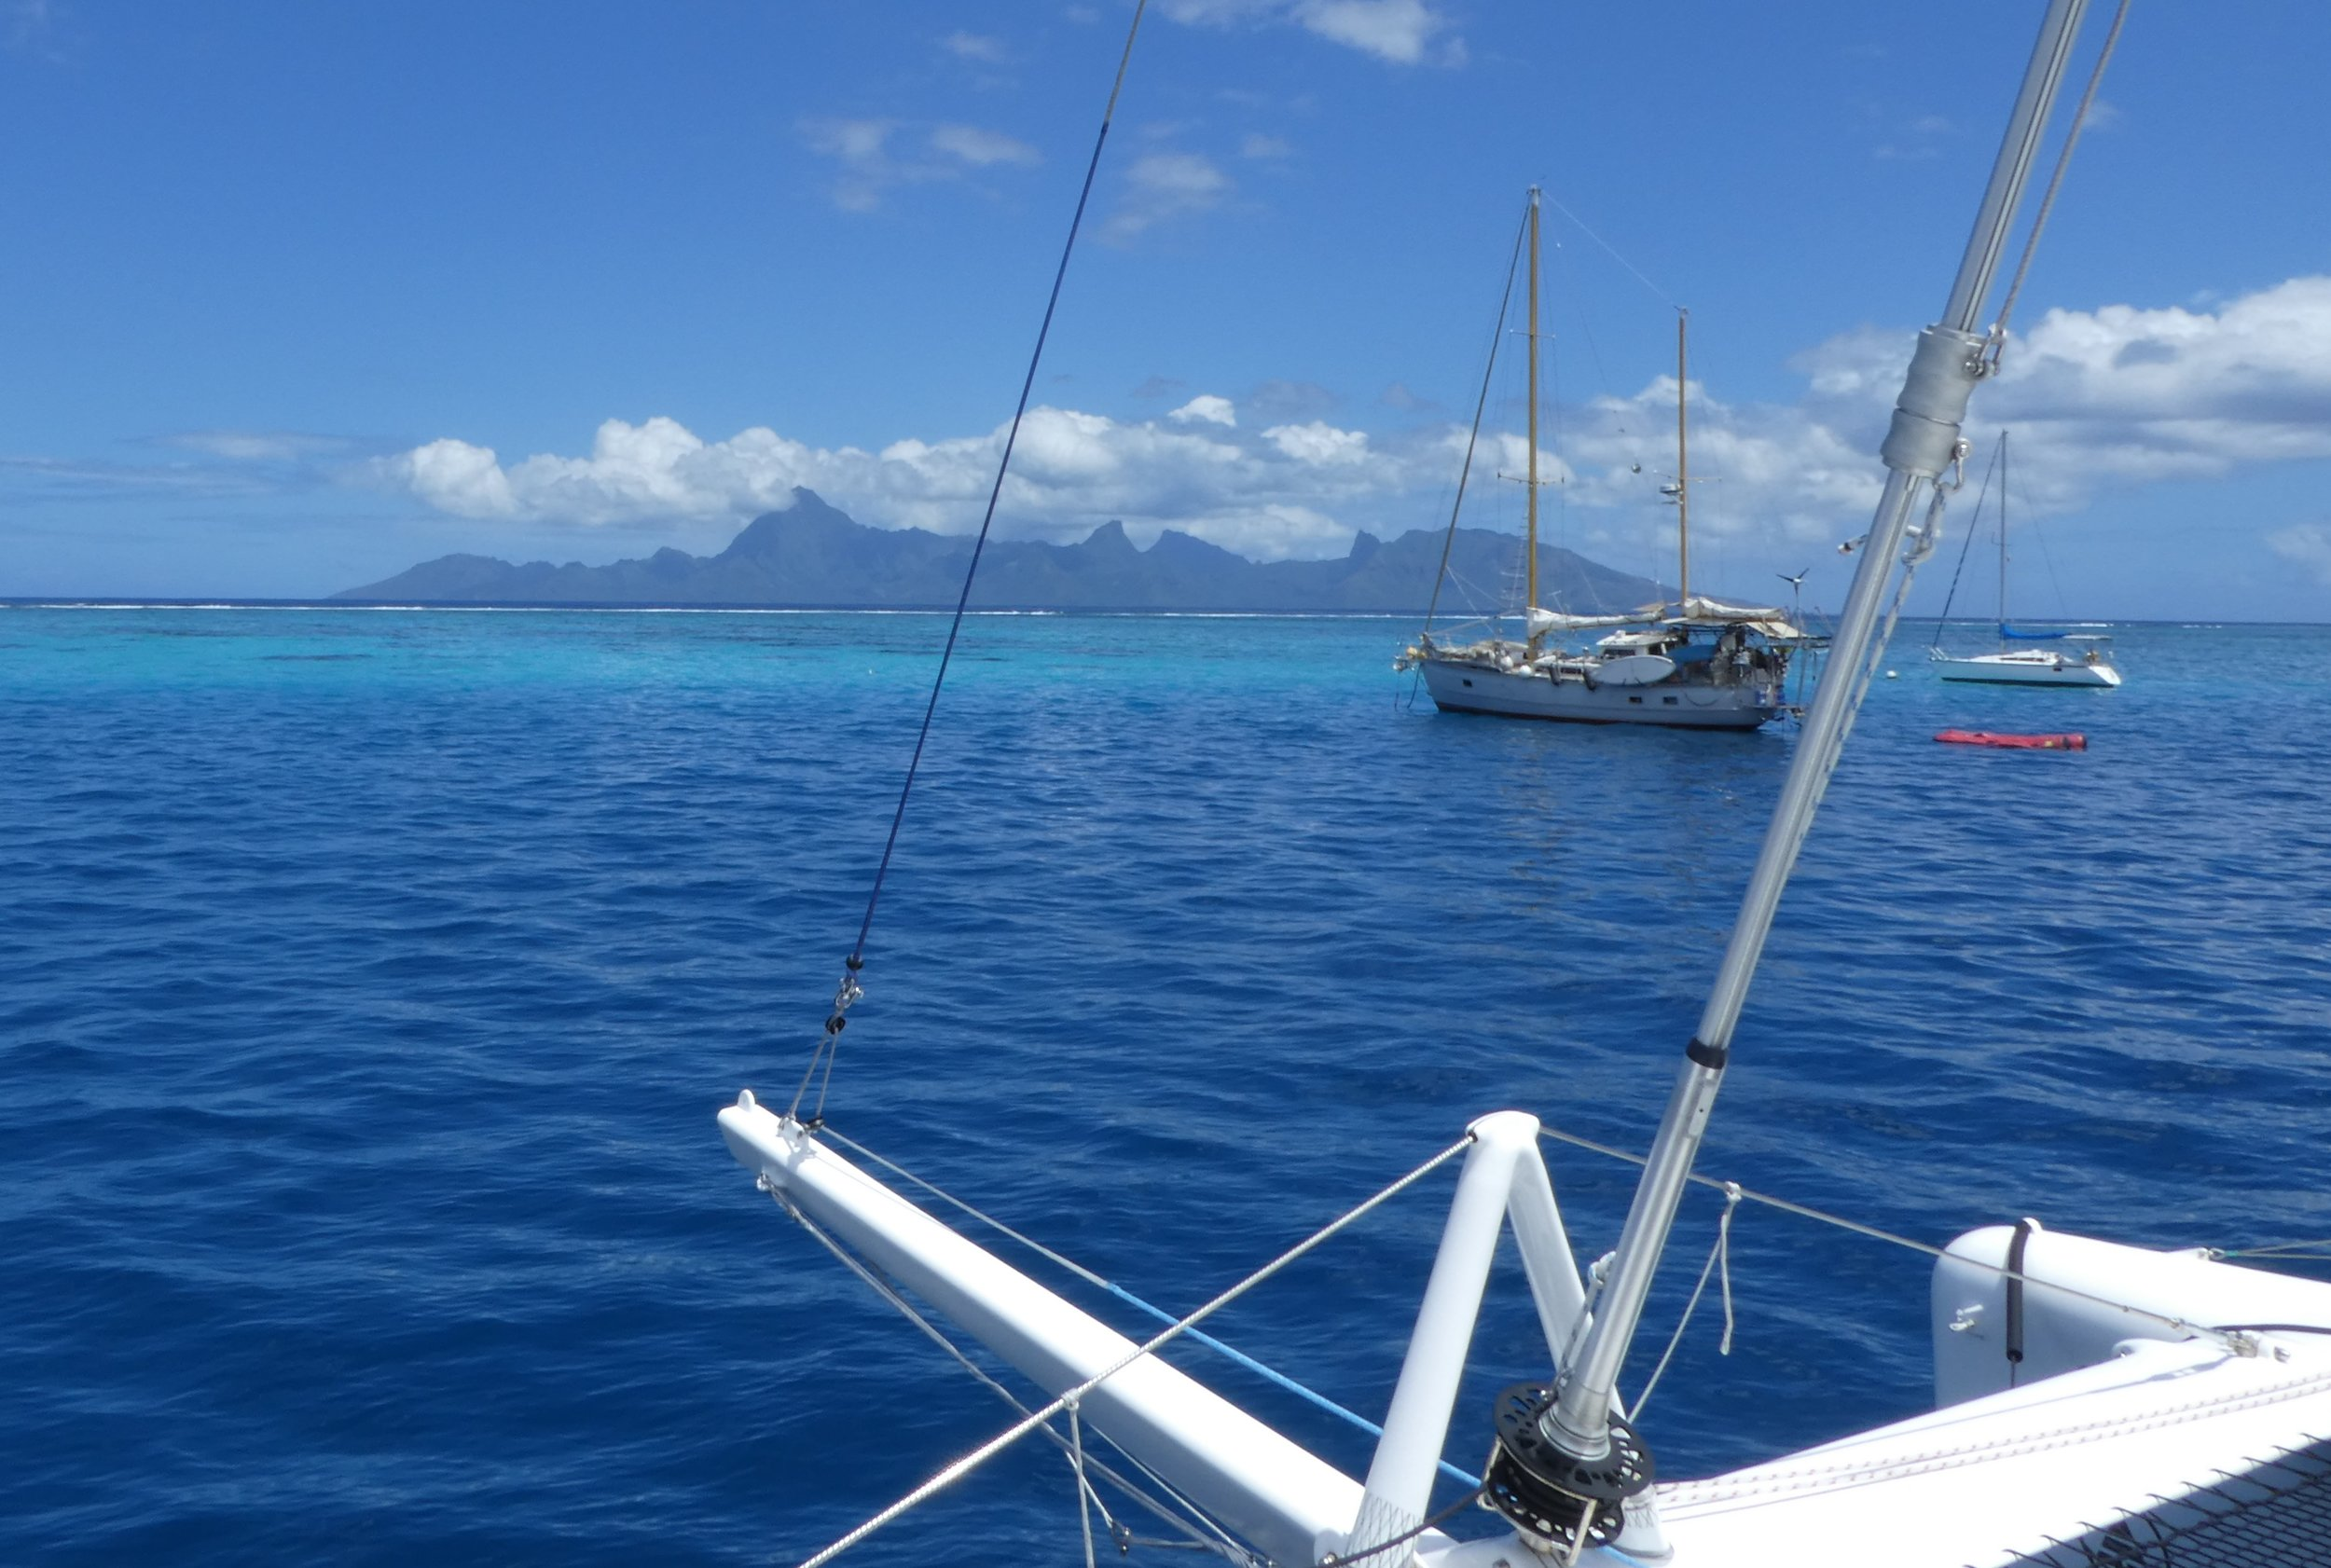 Roam, moored off Papeete, Moorea in the distance